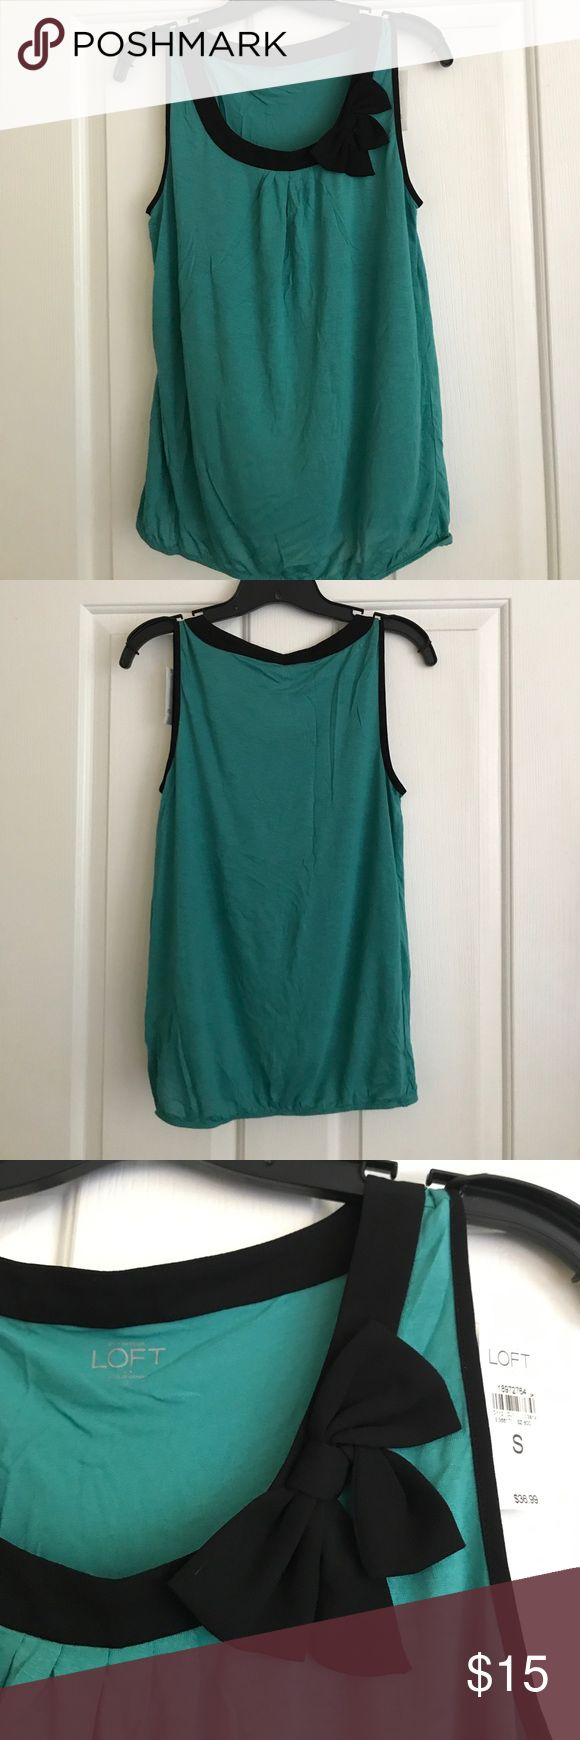 LOFT teal & black bow tank top Brand New - The LOFT teal and black lining with bow tank top and elastic hip waist. Size Small. Retailed $36.99 LOFT Tops Tank Tops